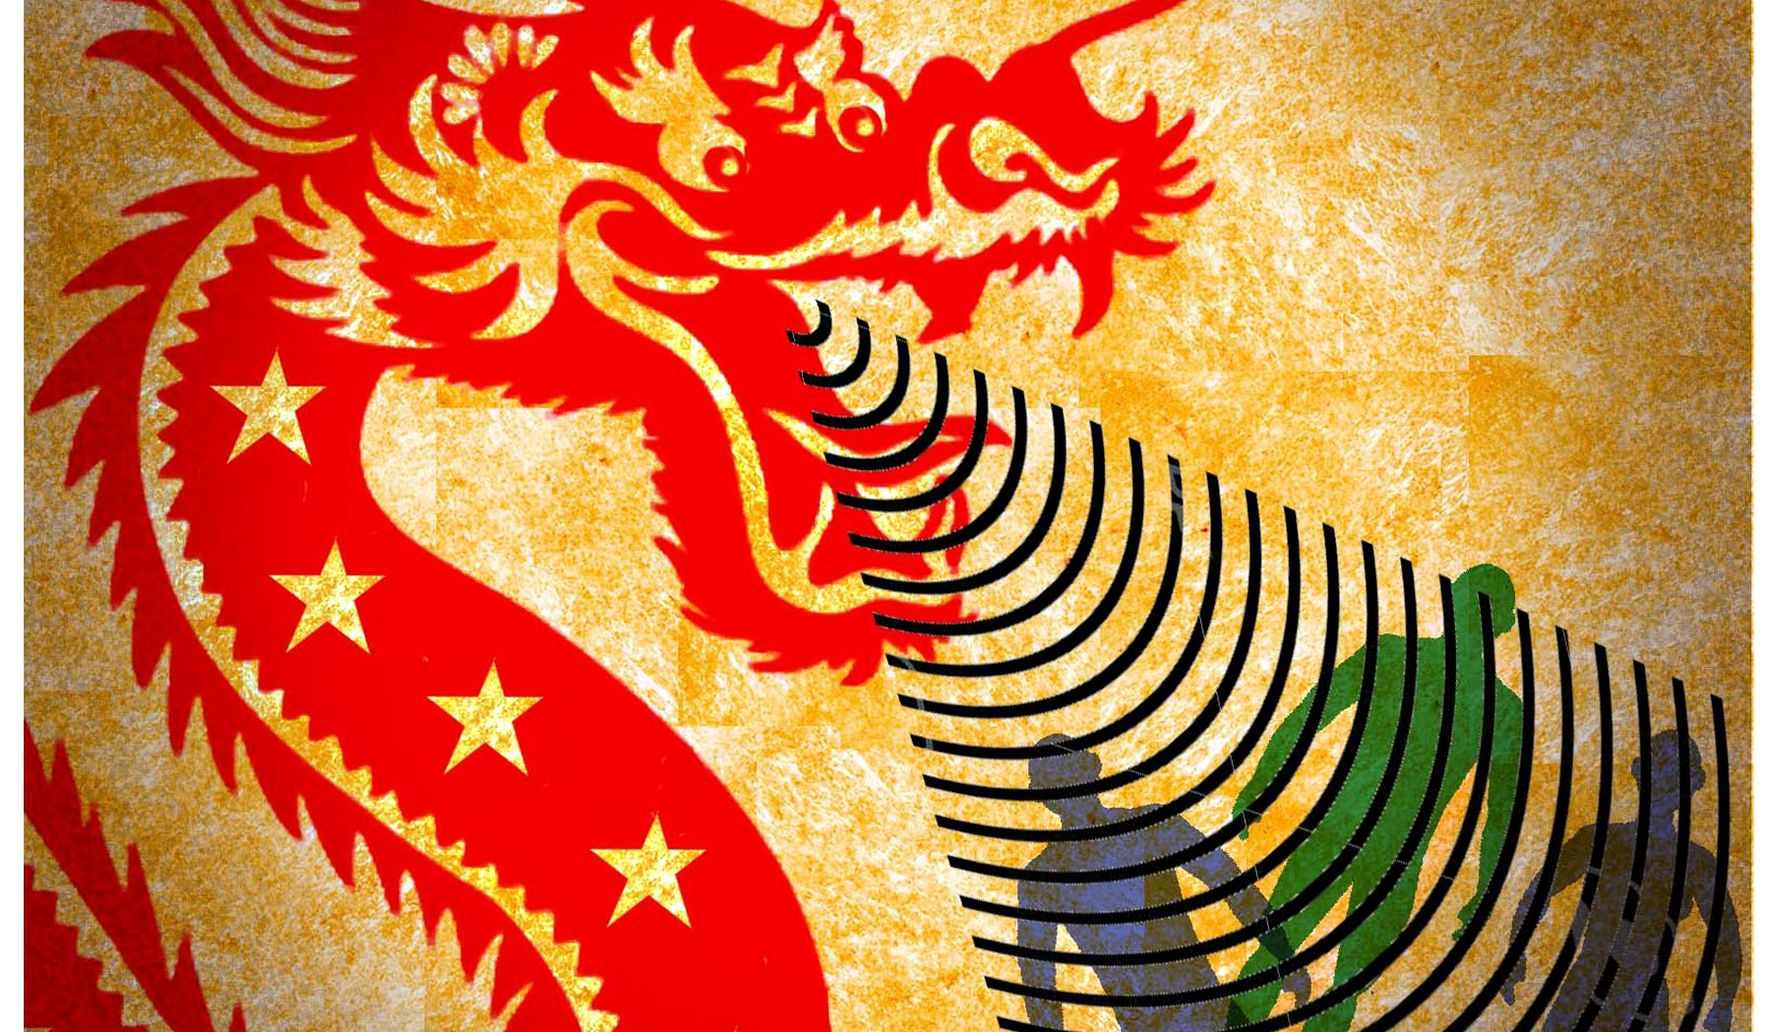 A new tool in China's kit of repression